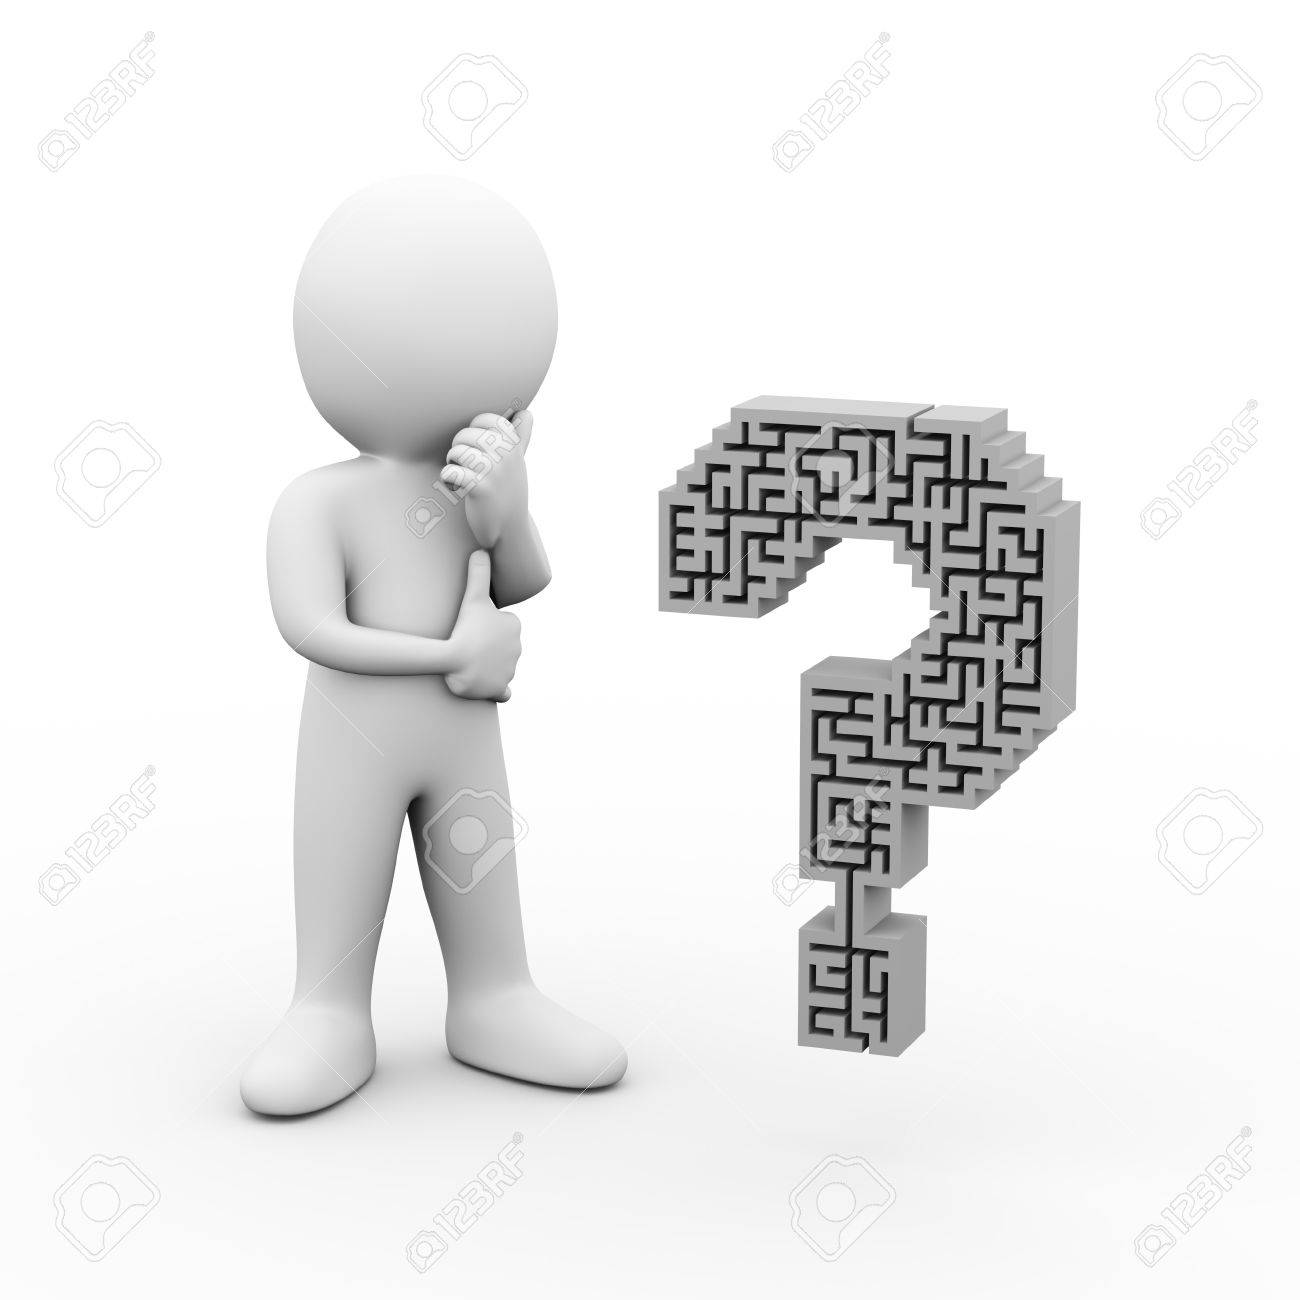 3d illustration of confuse man thinking and looking at question 3d illustration of confuse man thinking and looking at question mark symbol sign maze shape biocorpaavc Choice Image